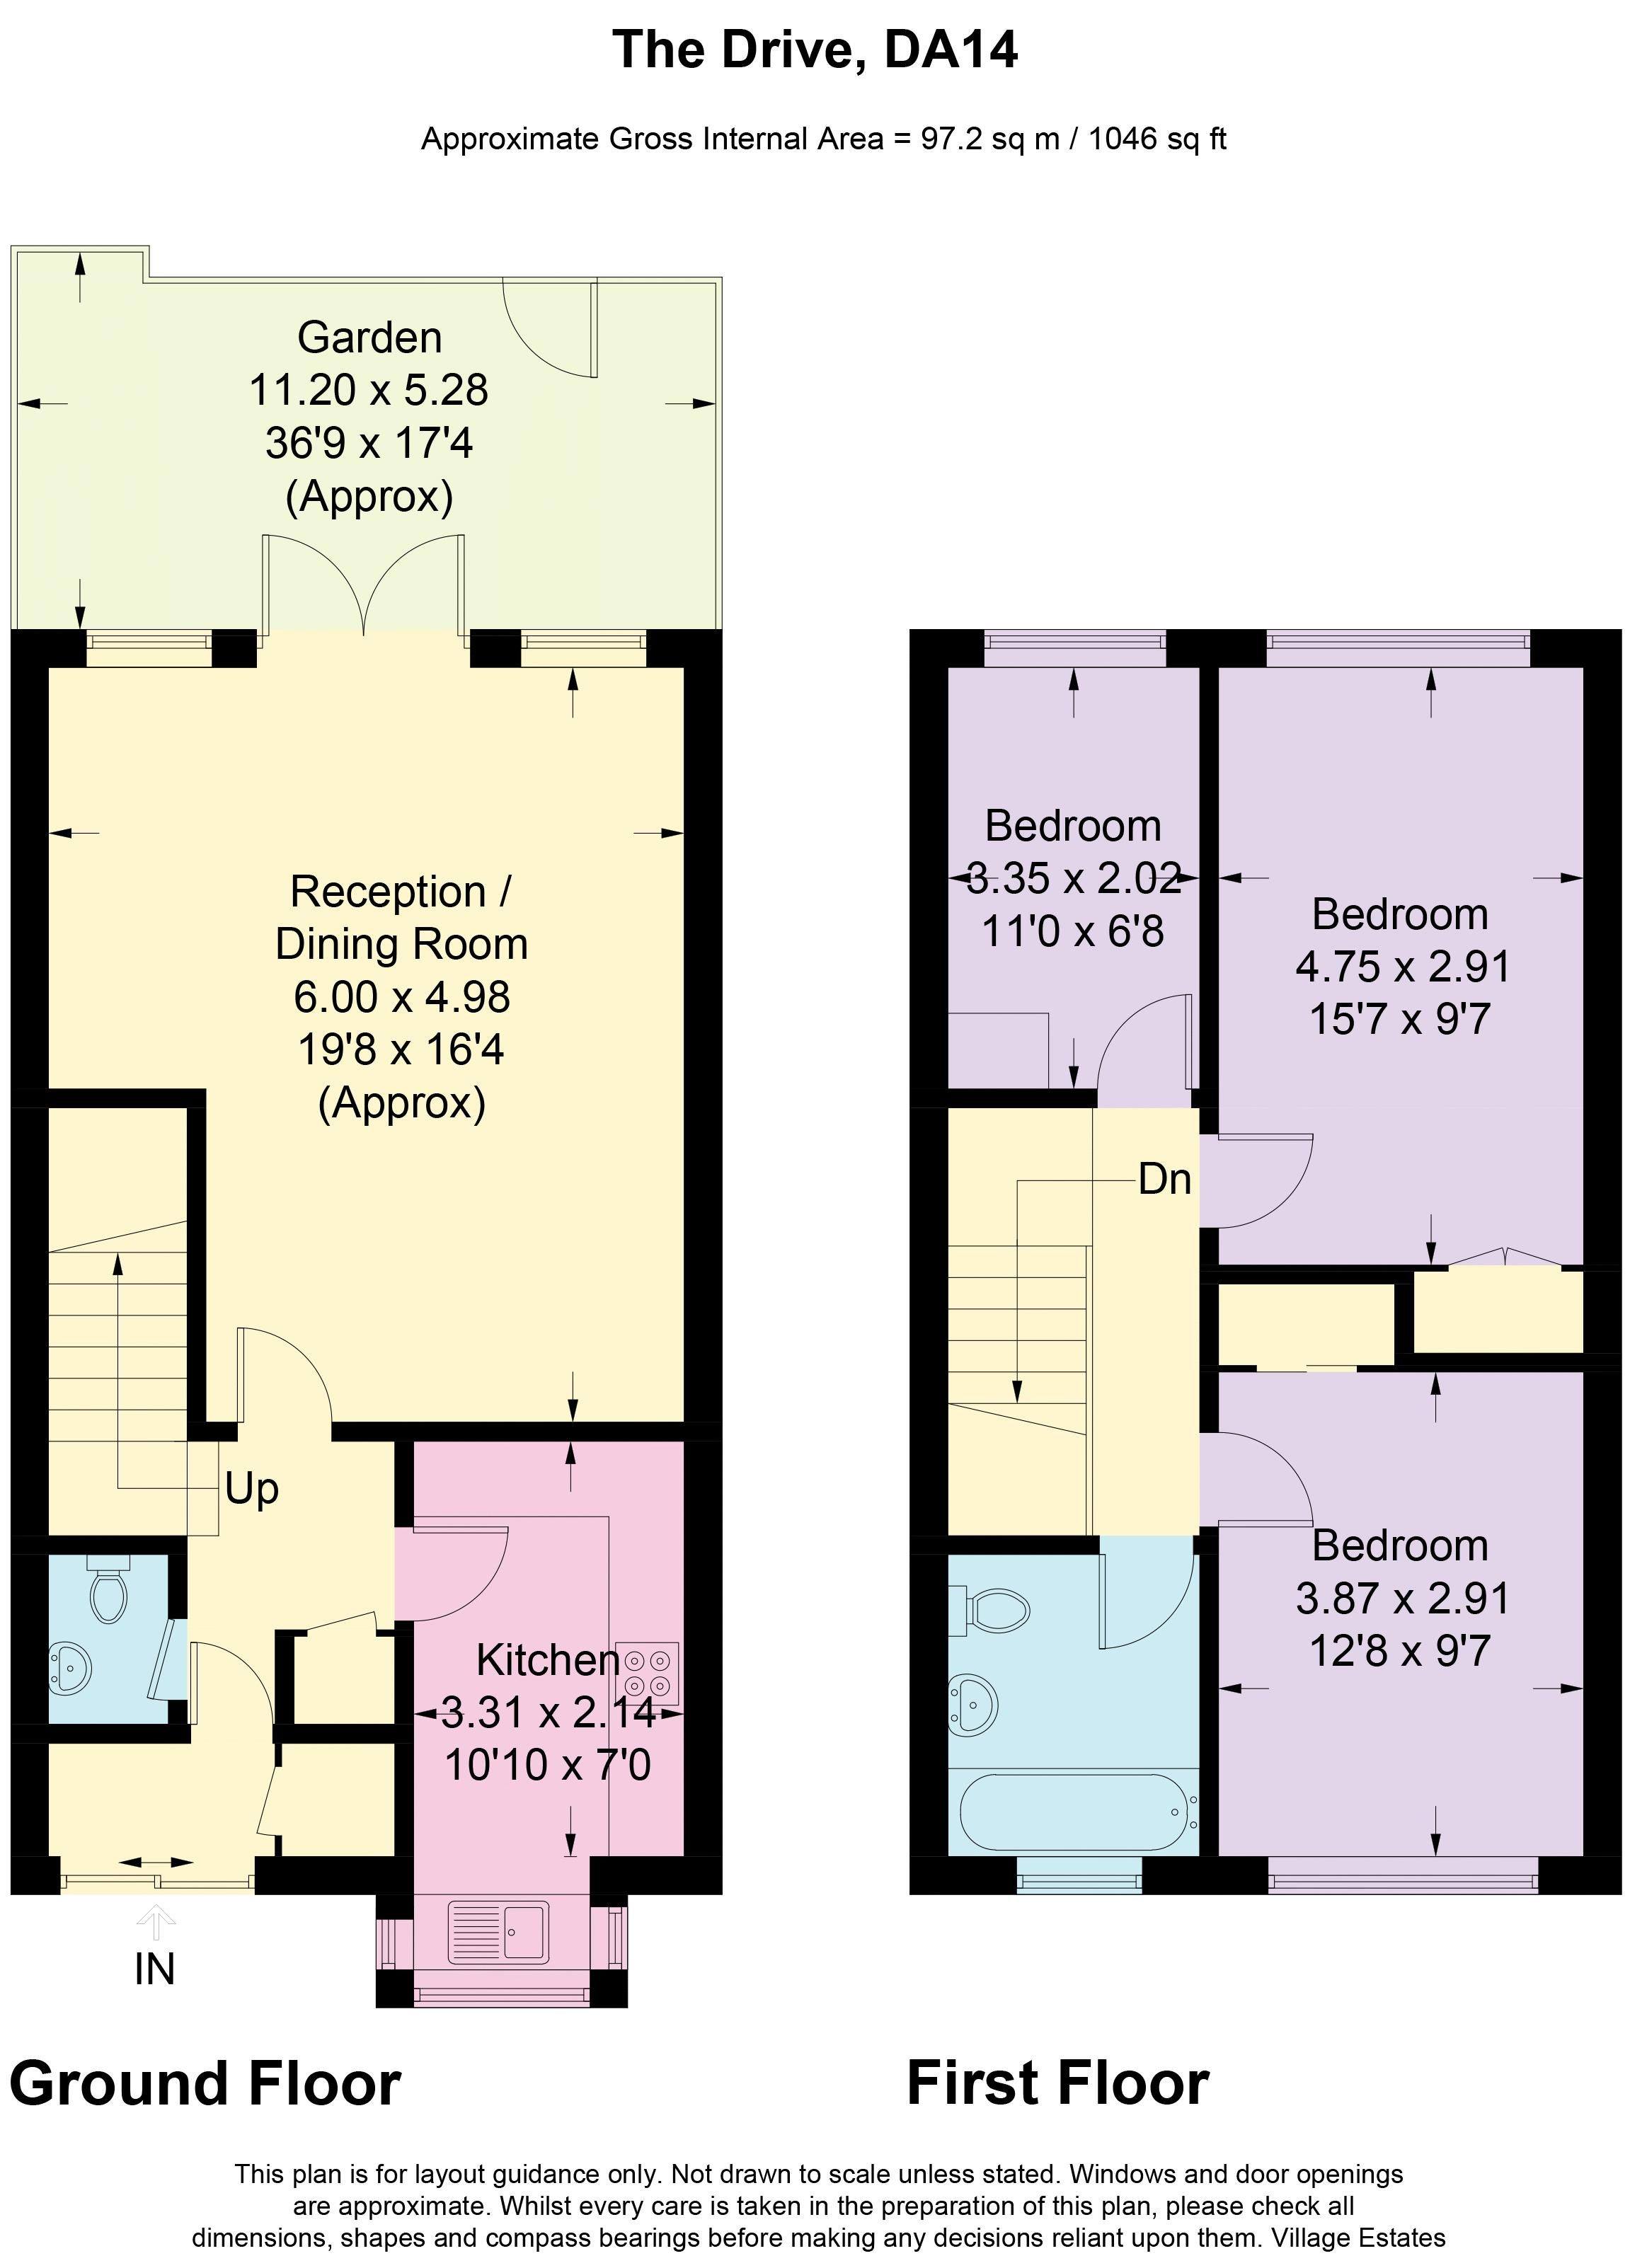 The Drive Floorplan